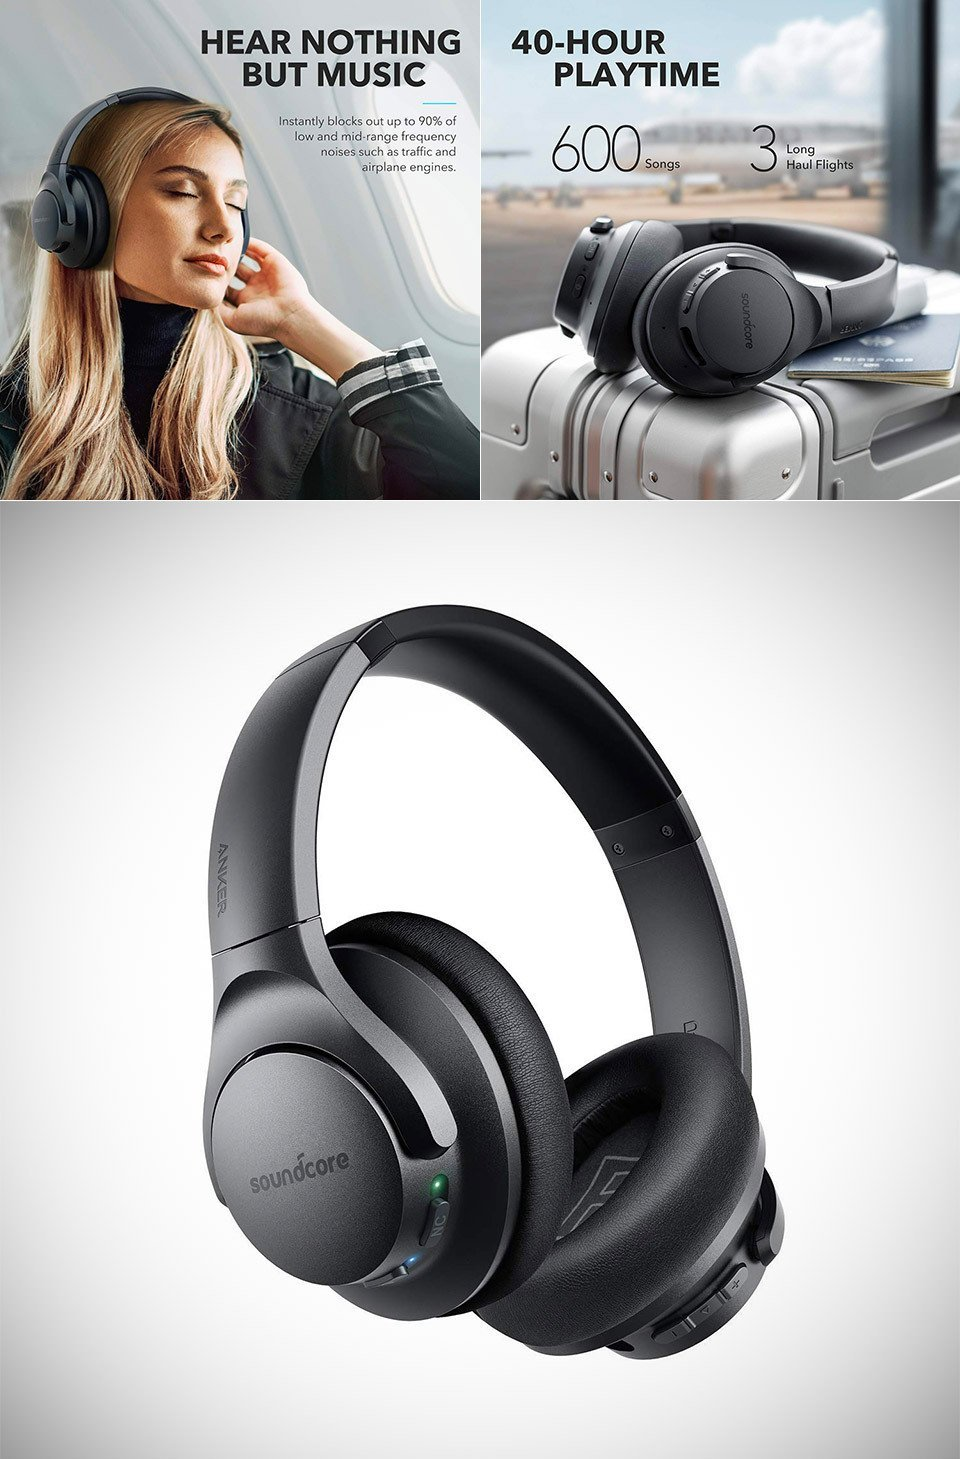 Anker Life Q20 Hybrid Active Noise Canceling Headphones 3